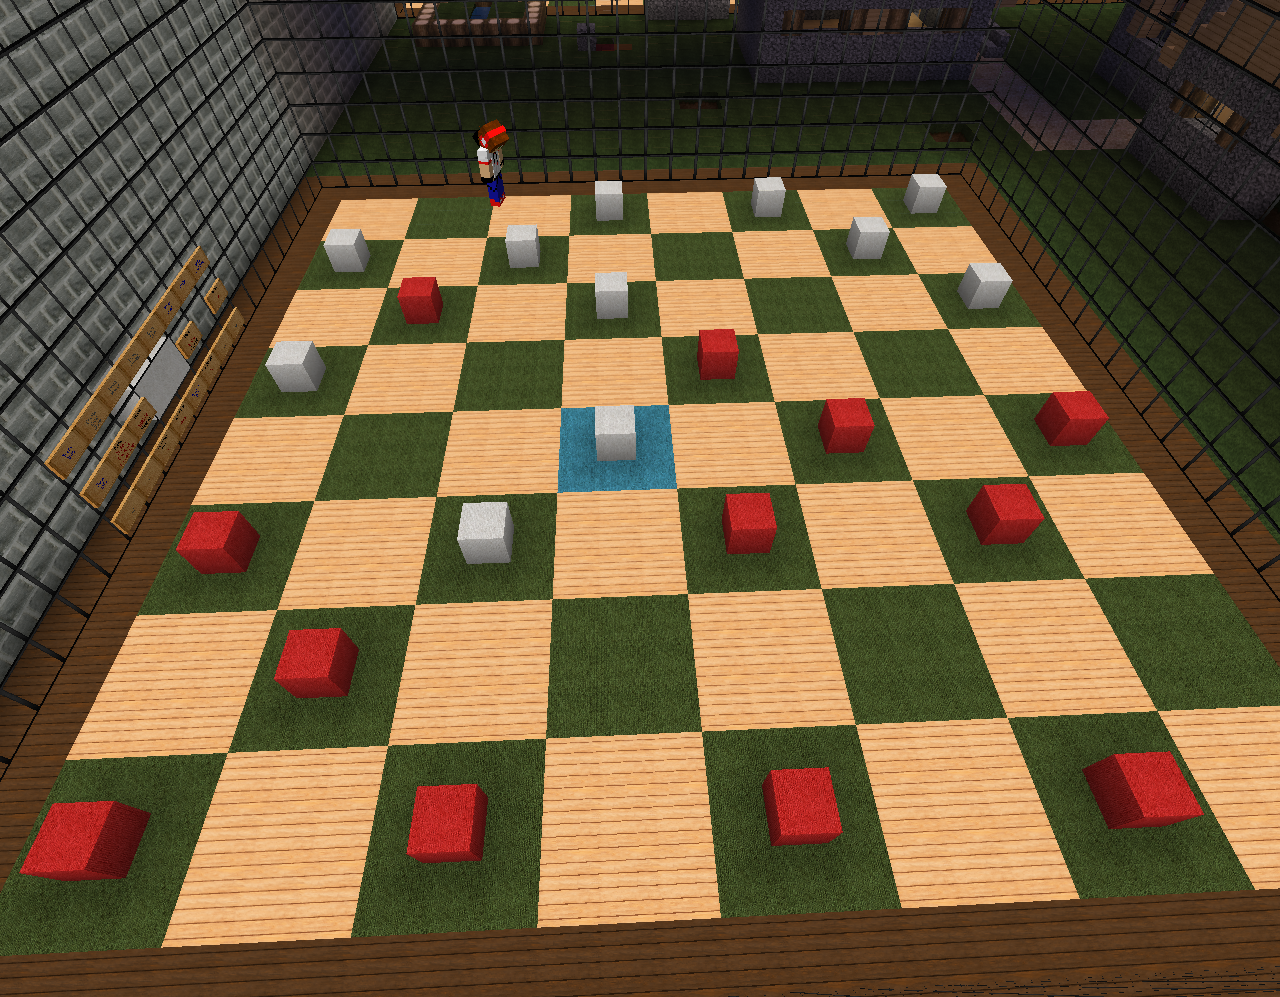 Checkers in Zyinx